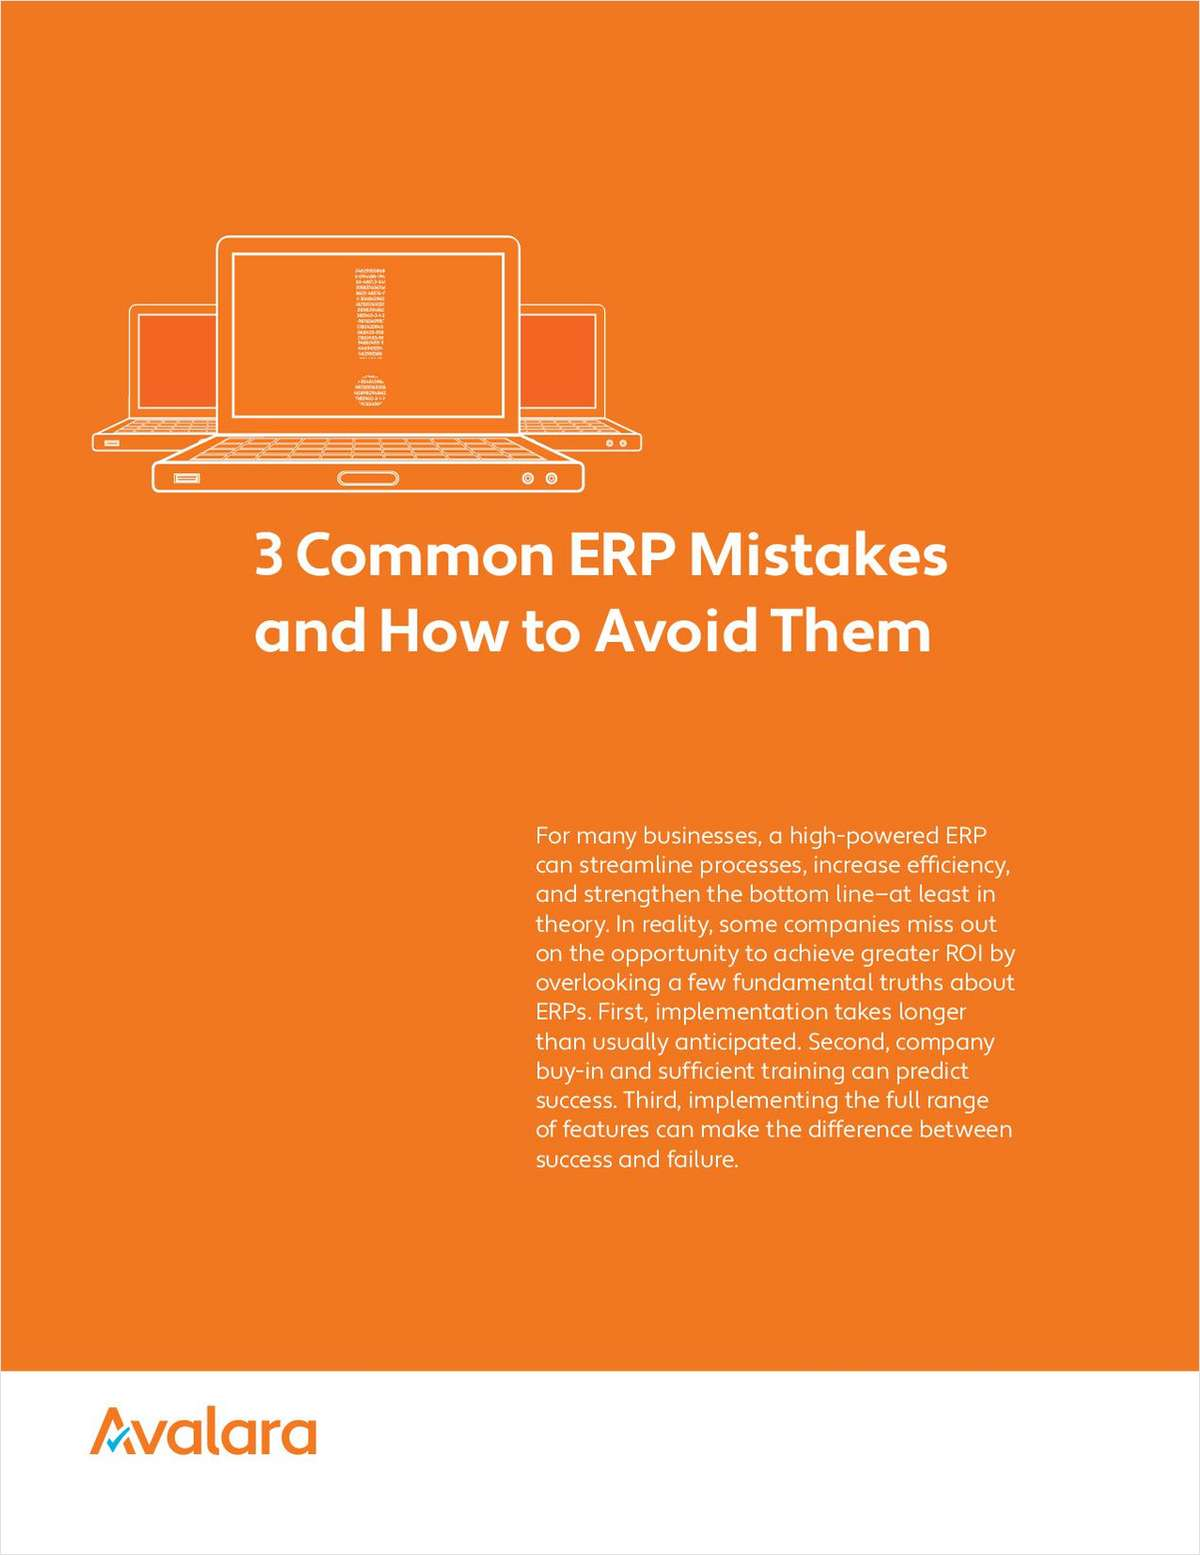 3 Common ERP Mistakes and How to Avoid Them